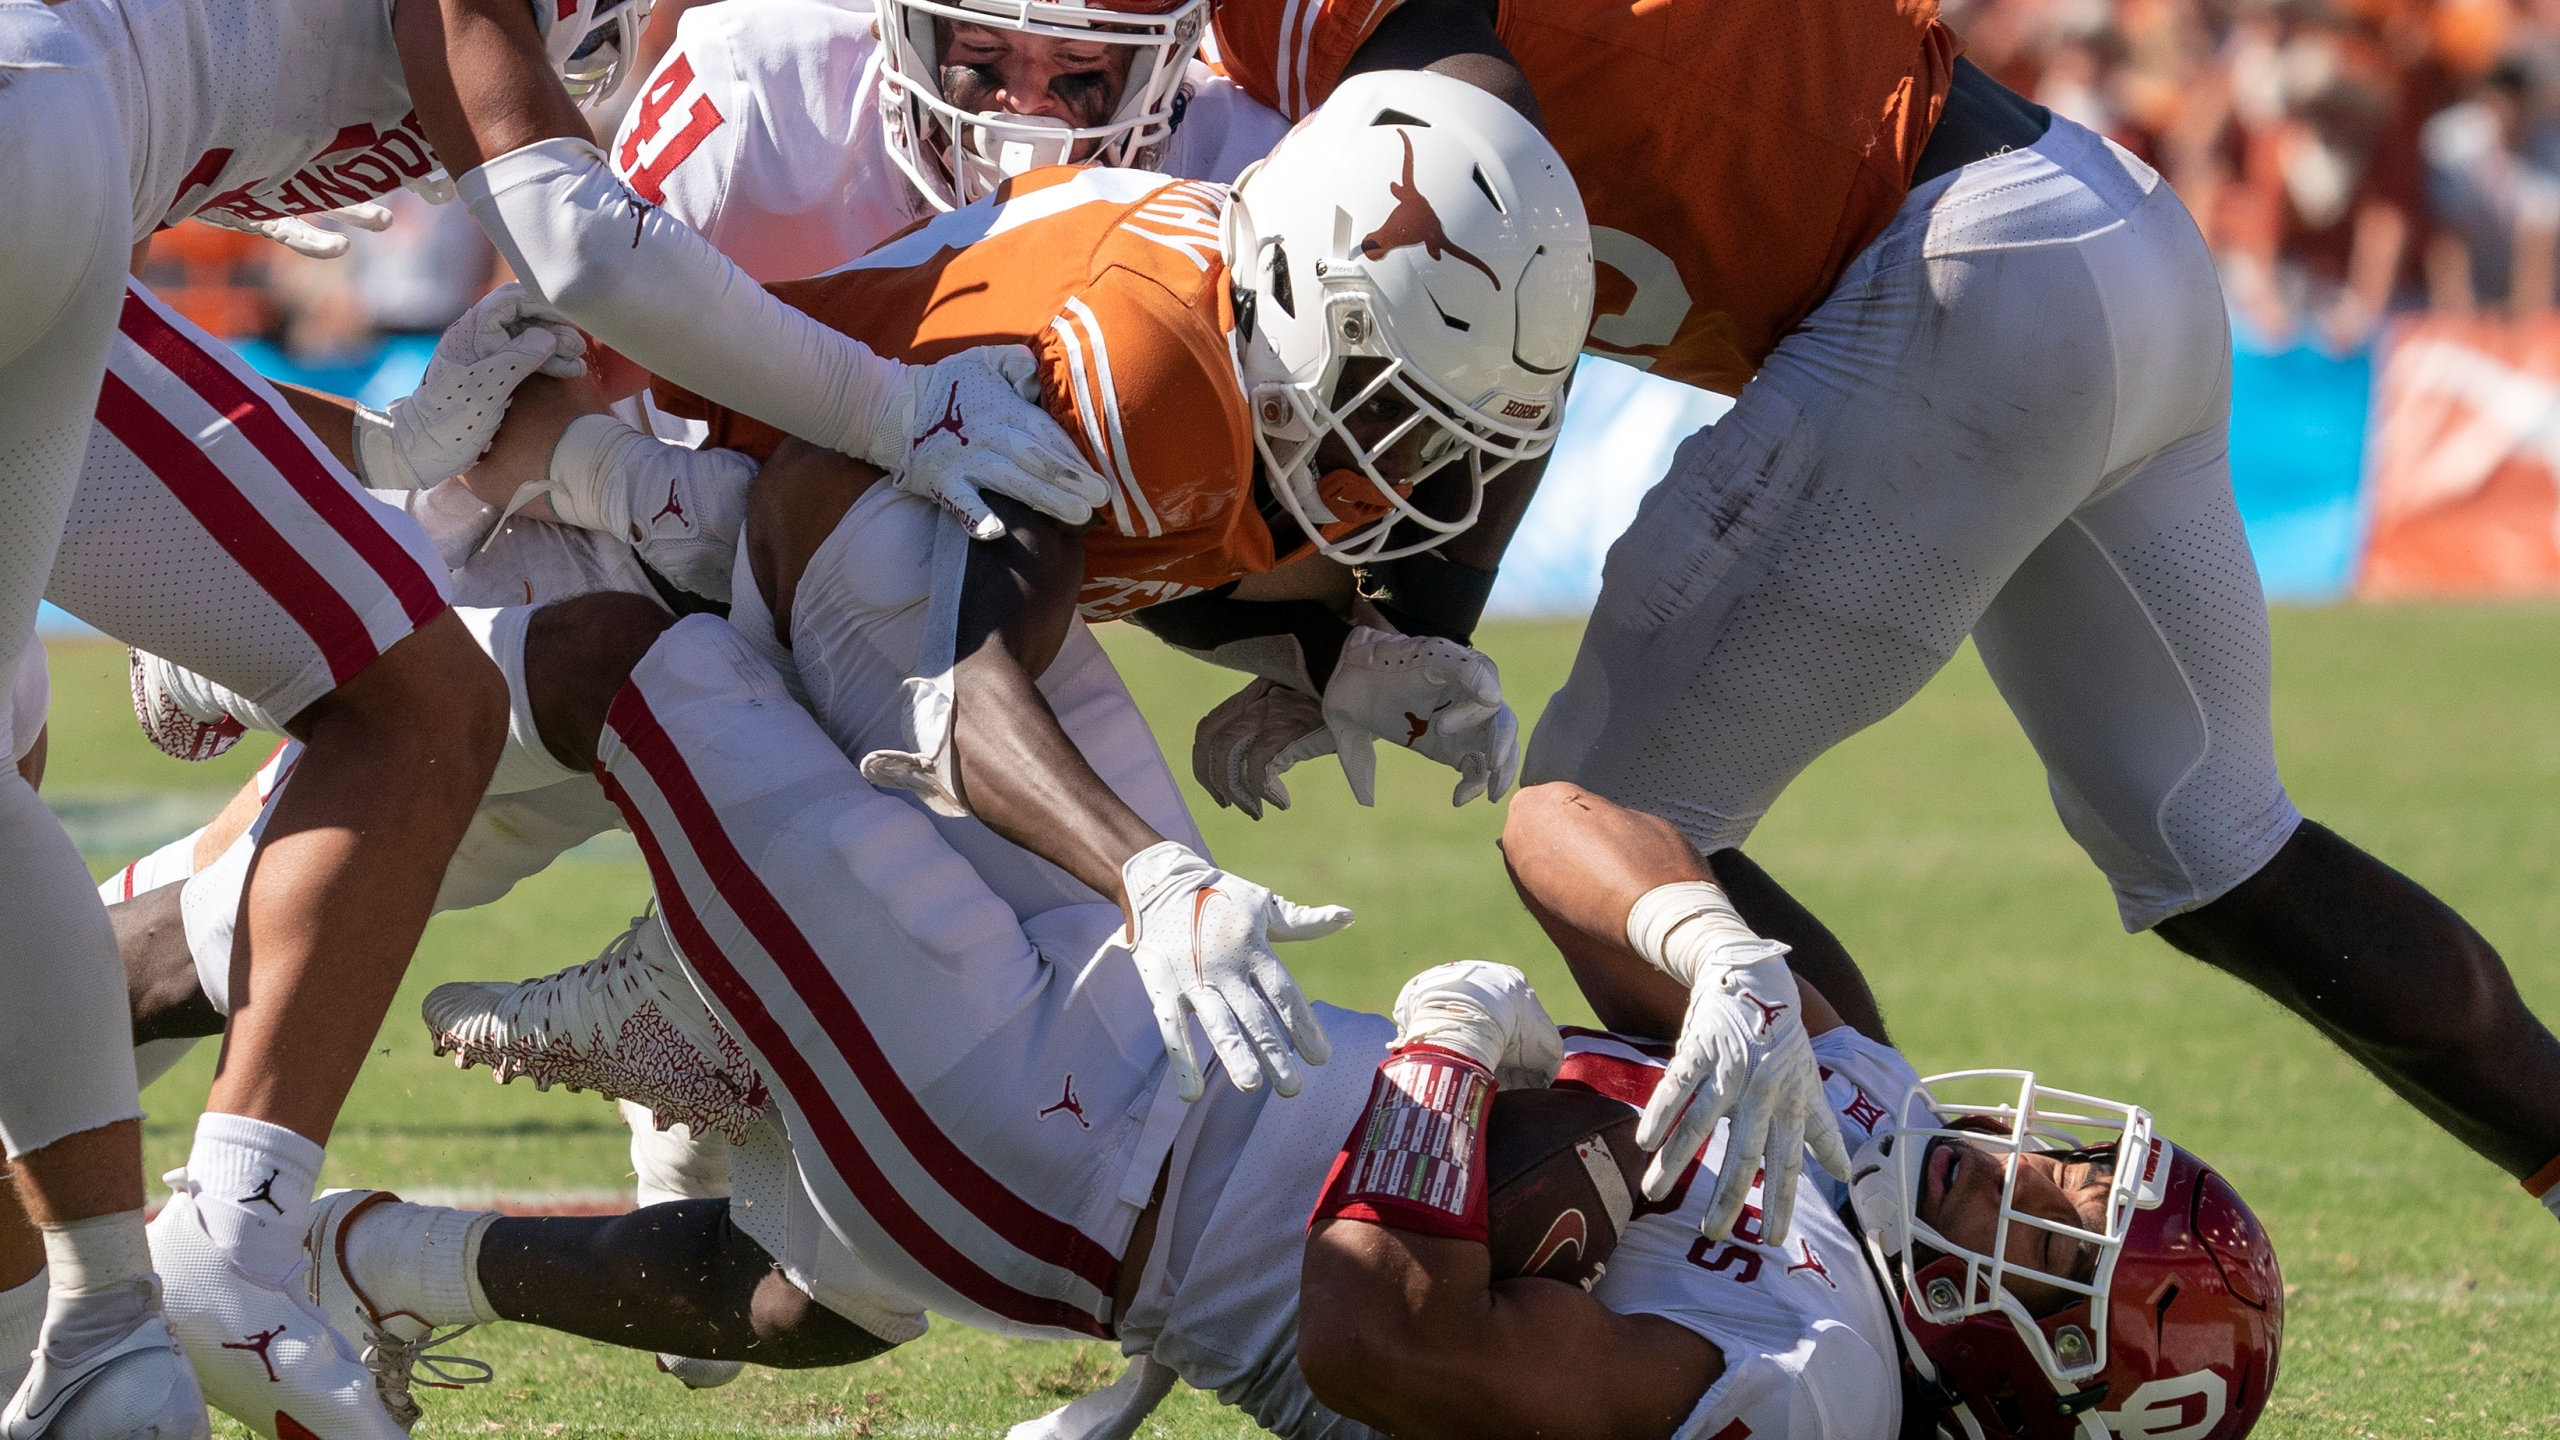 Oklahoma linebacker Caleb Kelly (19) falls to the ground after stripping the ball from Texas kick returner Xavier Worthy (8) on a kickoff during the second half of an NCAA college football game at the Cotton Bowl, Saturday, Oct. 9, 2021, in Dallas. (AP Photo/Jeffrey McWhorter)